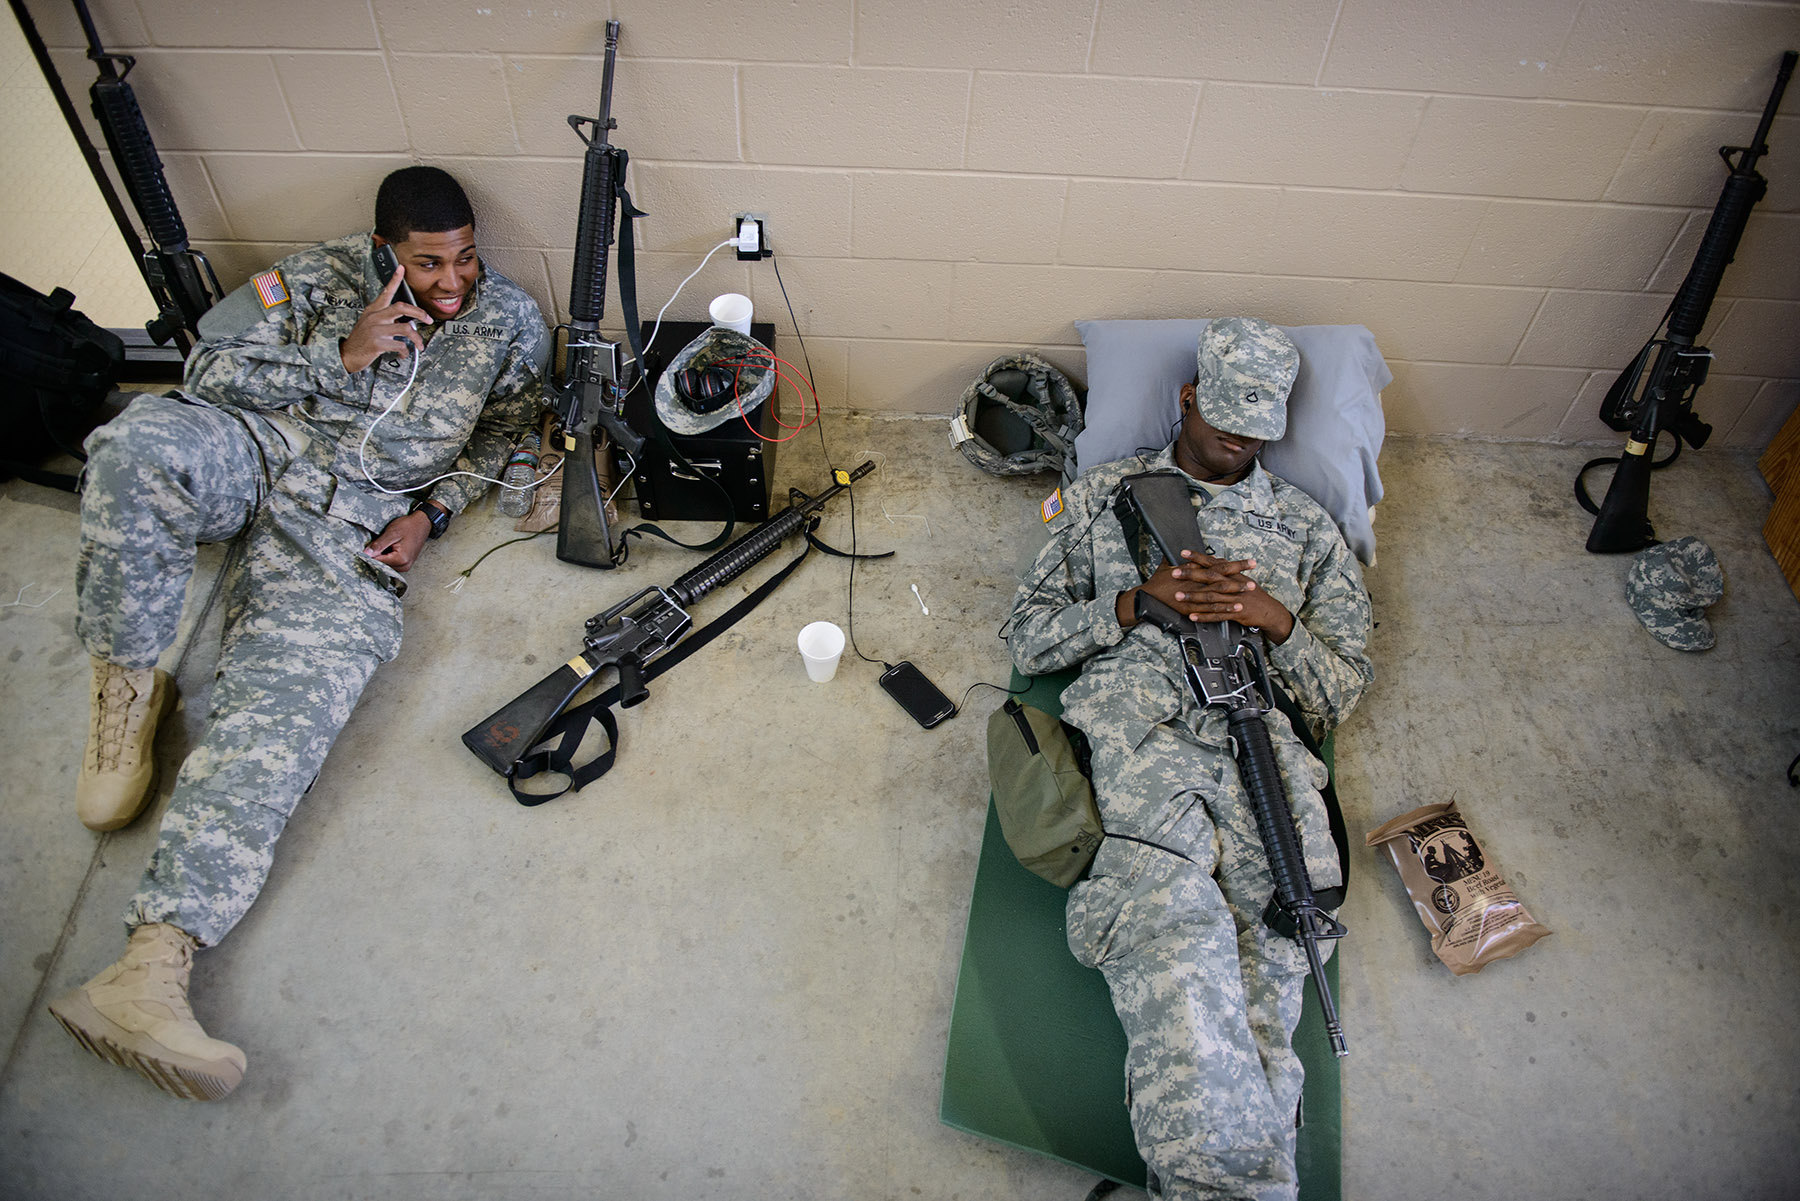 Honorable Mention I FeatureAndrew Craft, The Fayetteville ObserverPfc. Matthew Newman, left, and Pfc. Evan Smith, both of the 50th Signal Battalion, relax as they wait for the flight to West Africa Monday, Nov. 10, 2014, on Fort Bragg. The soldiers are headed to West Africa to help with the containment of the Ebola virus.